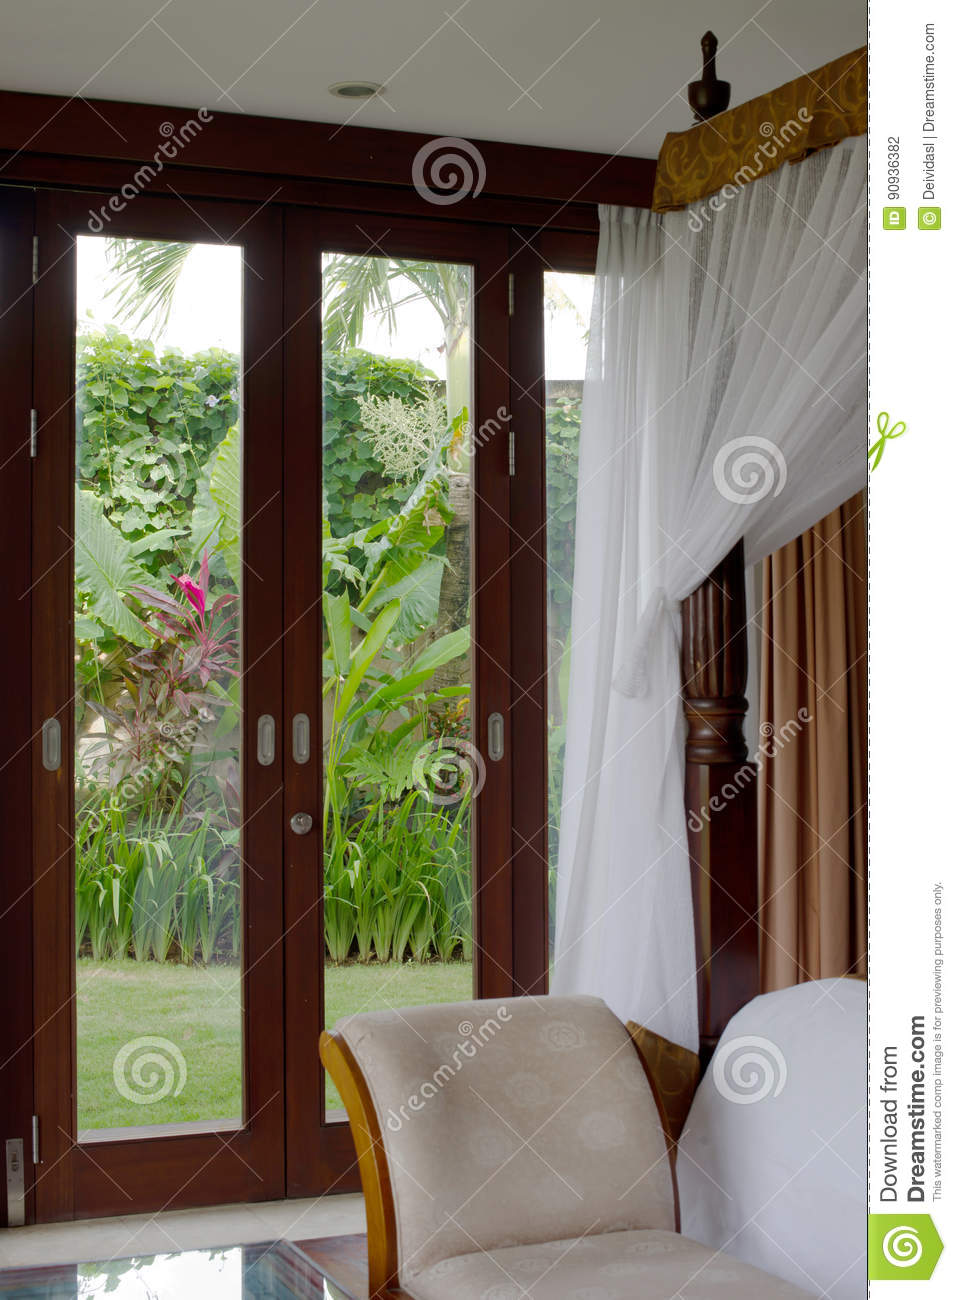 Meubles Ubud Bali Traditional And Antique Bedroom Villa Stock Photo Image Of